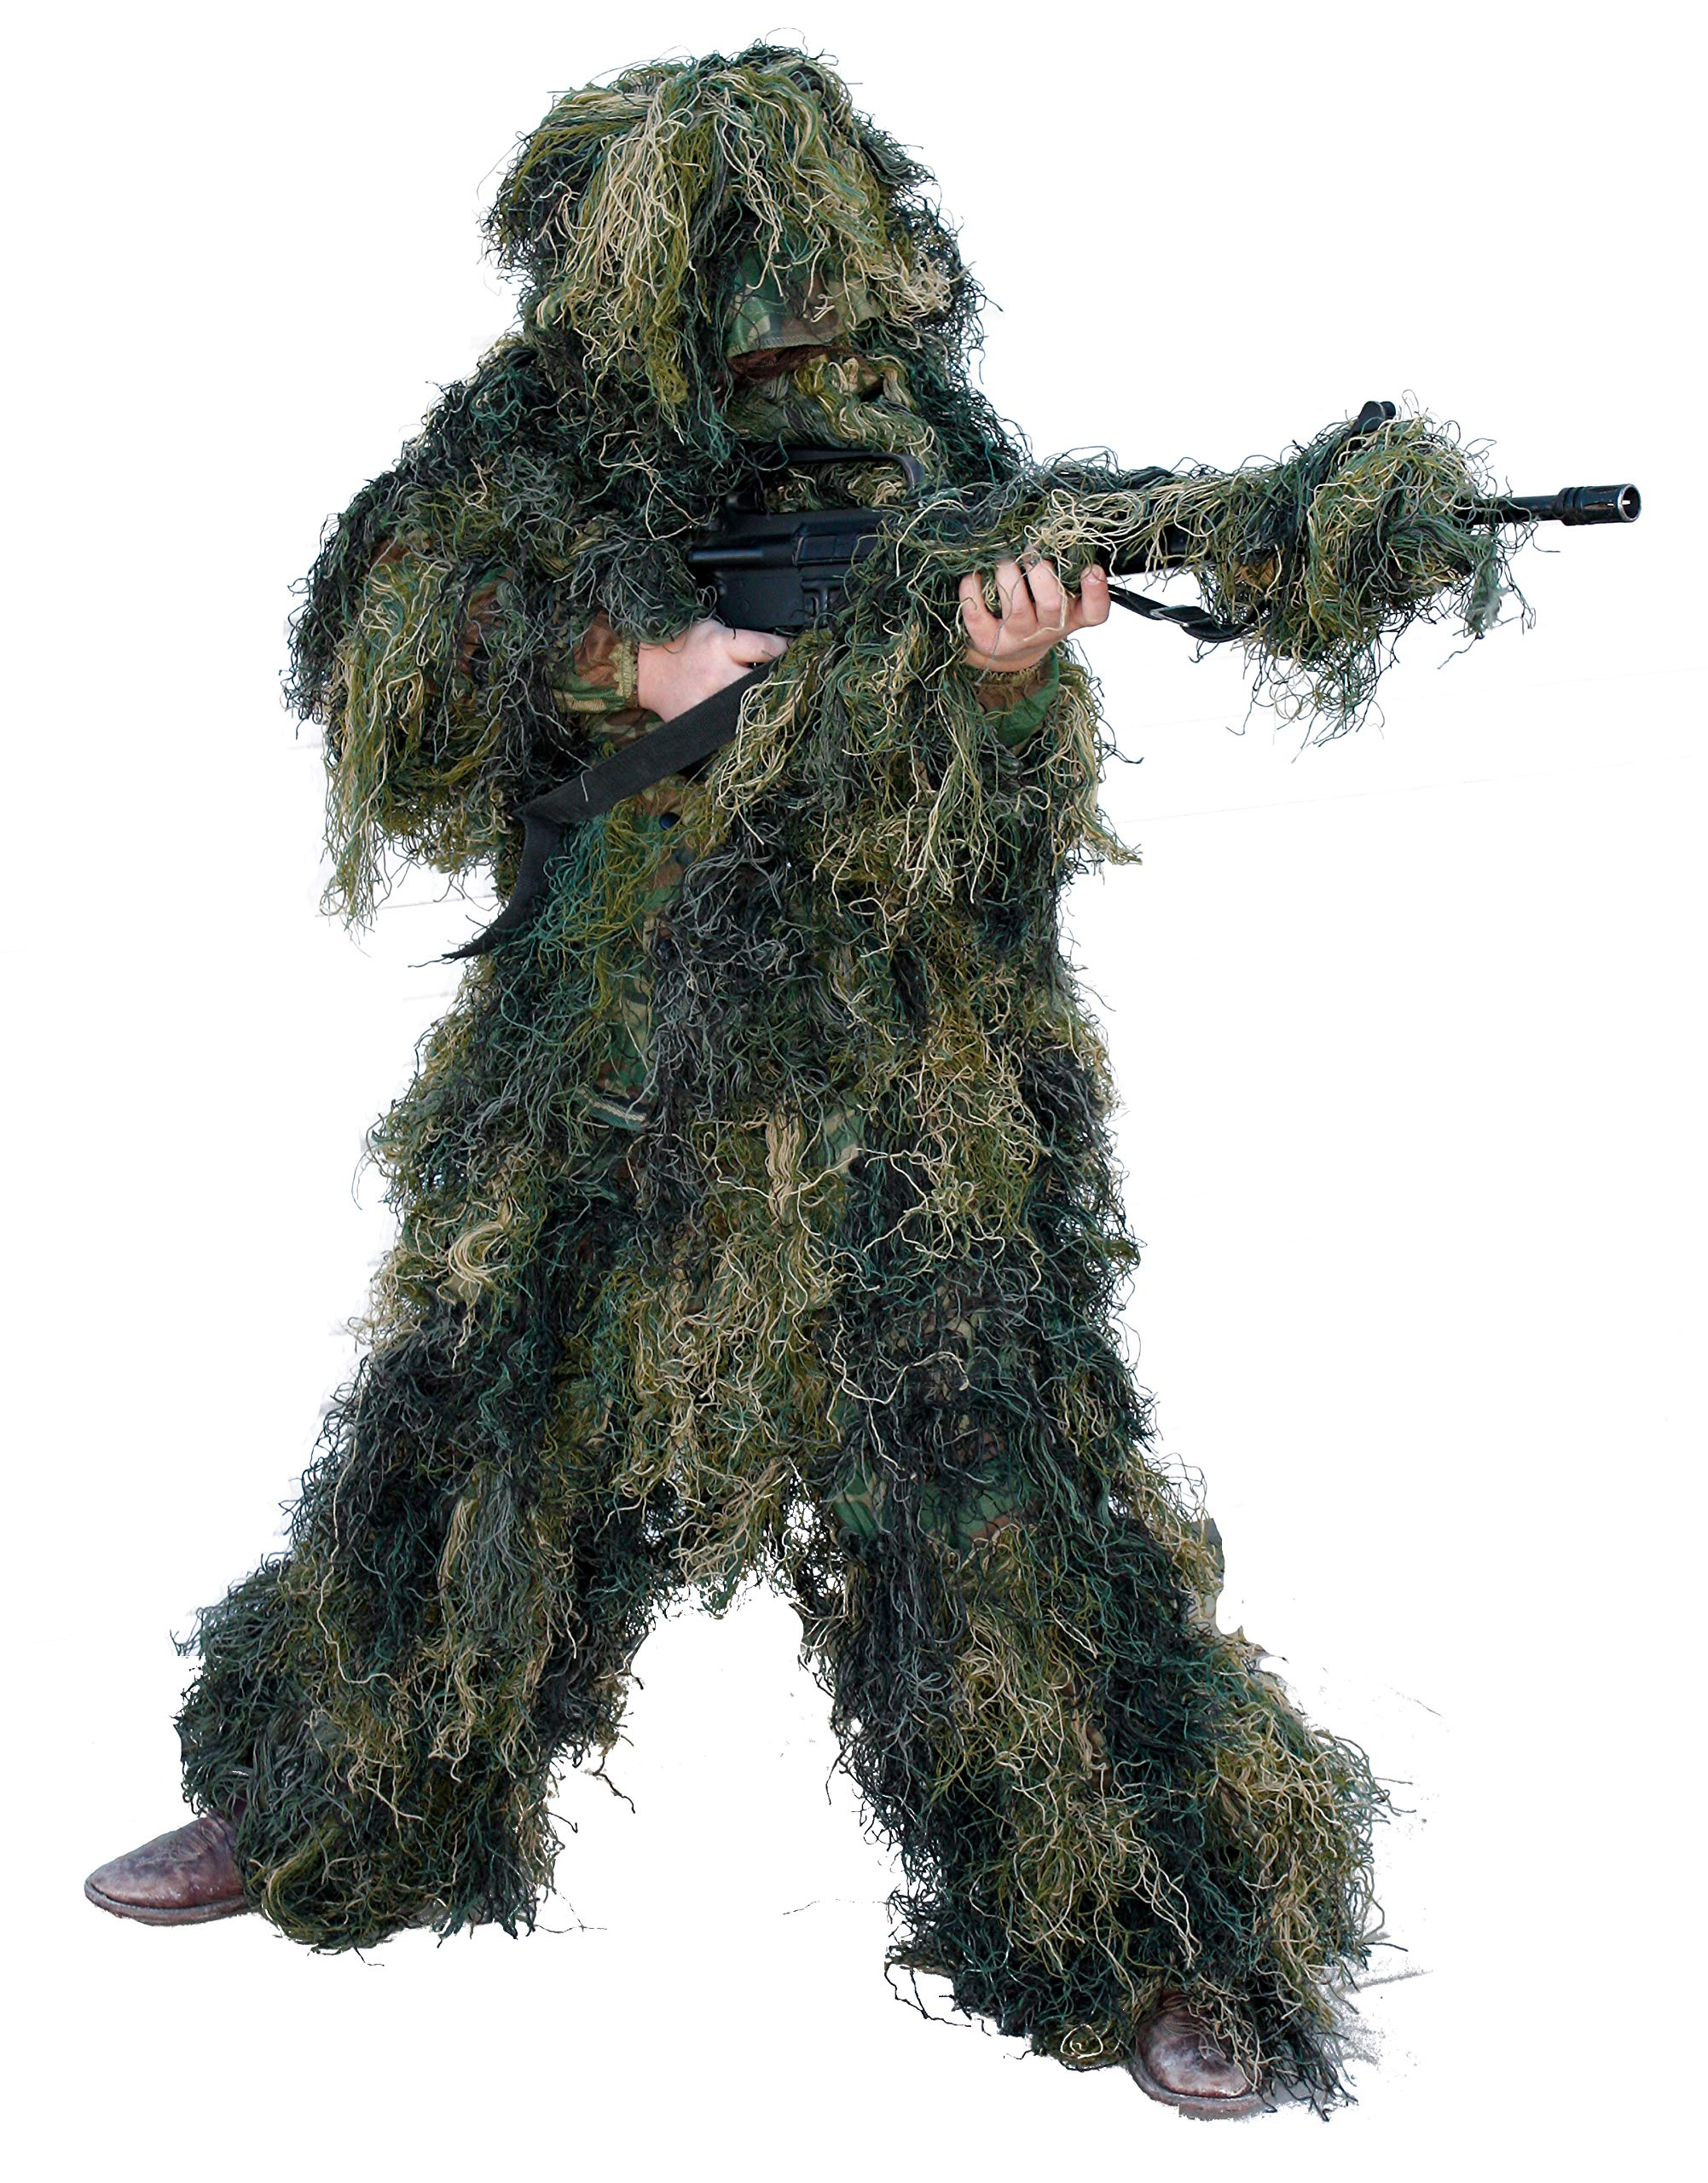 Red Rock Outdoor Gear Men's Youth Ghillie Suit, Woodland Camouflage, 14-16 by Red Rock Outdoor Gear